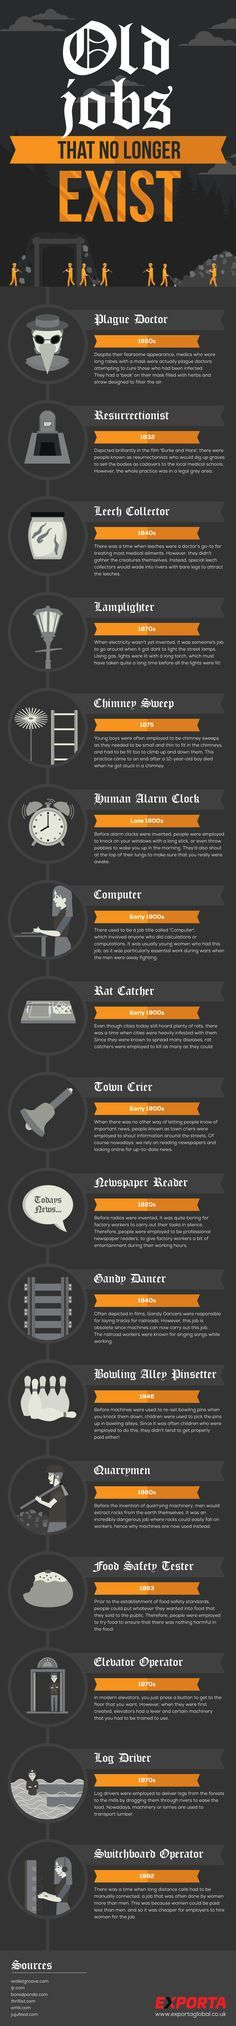 Old Jobs That No Longer Exist #Infographic #Career #History